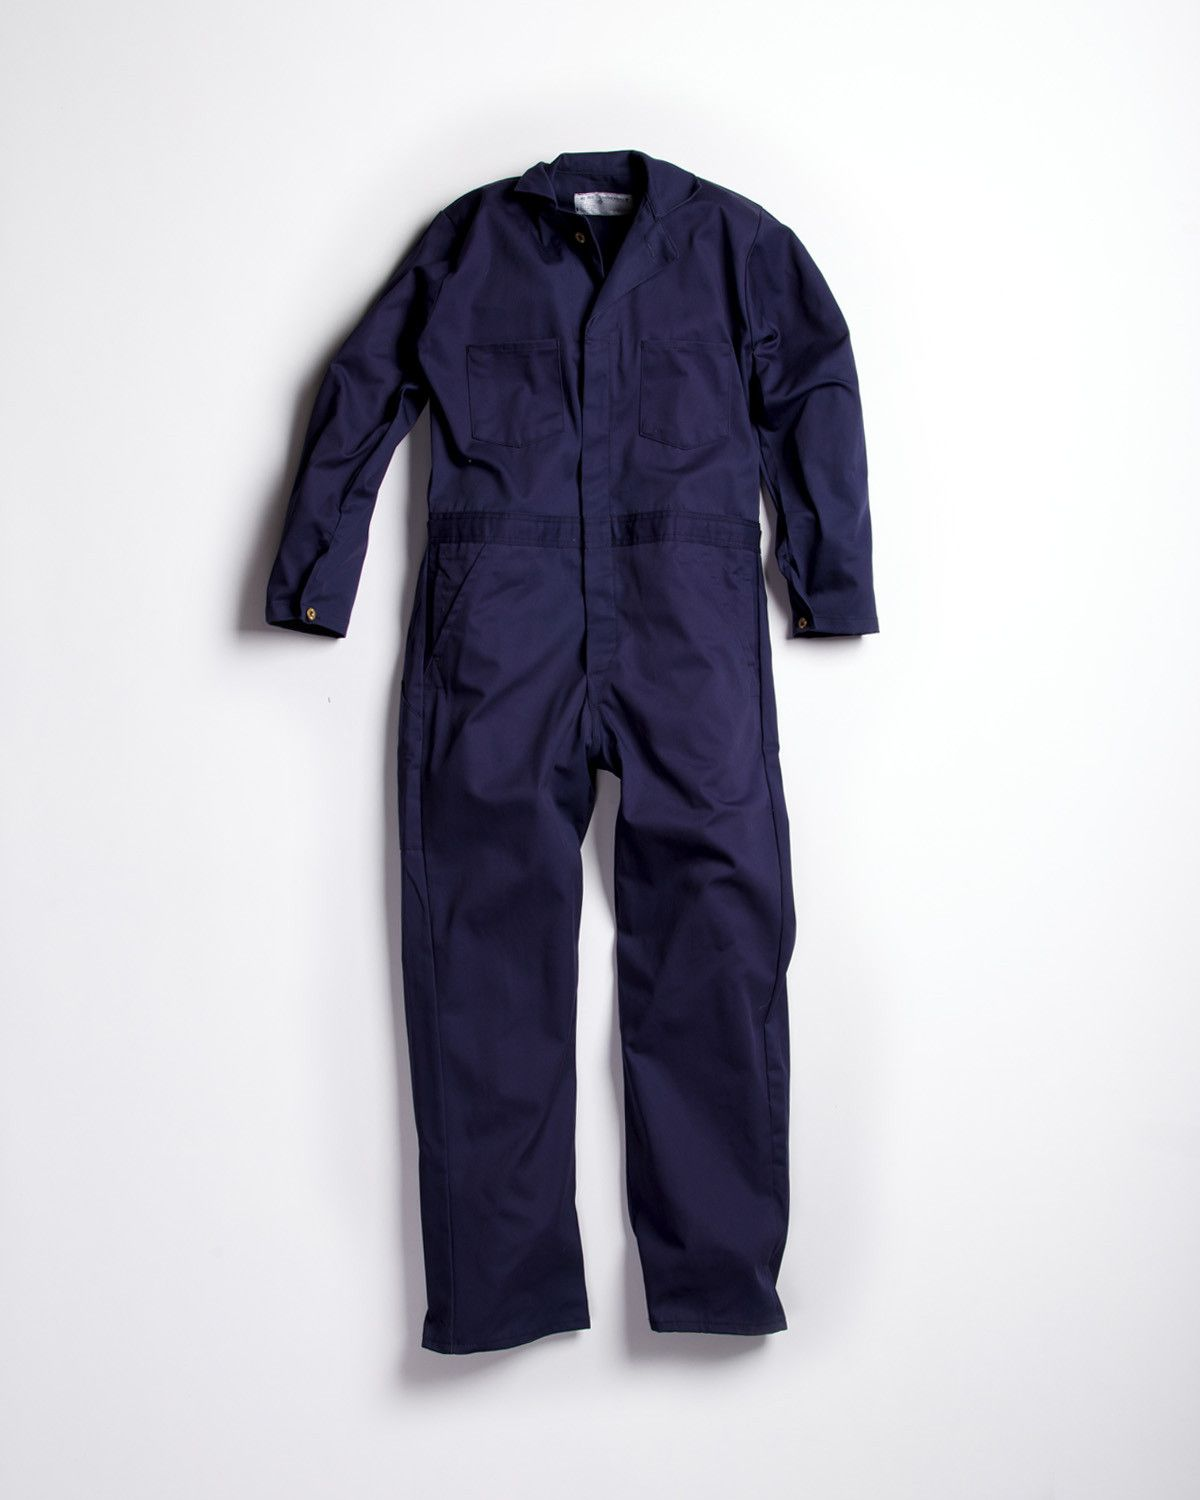 universal cotton coveralls navy blue button work on work coveralls id=64106